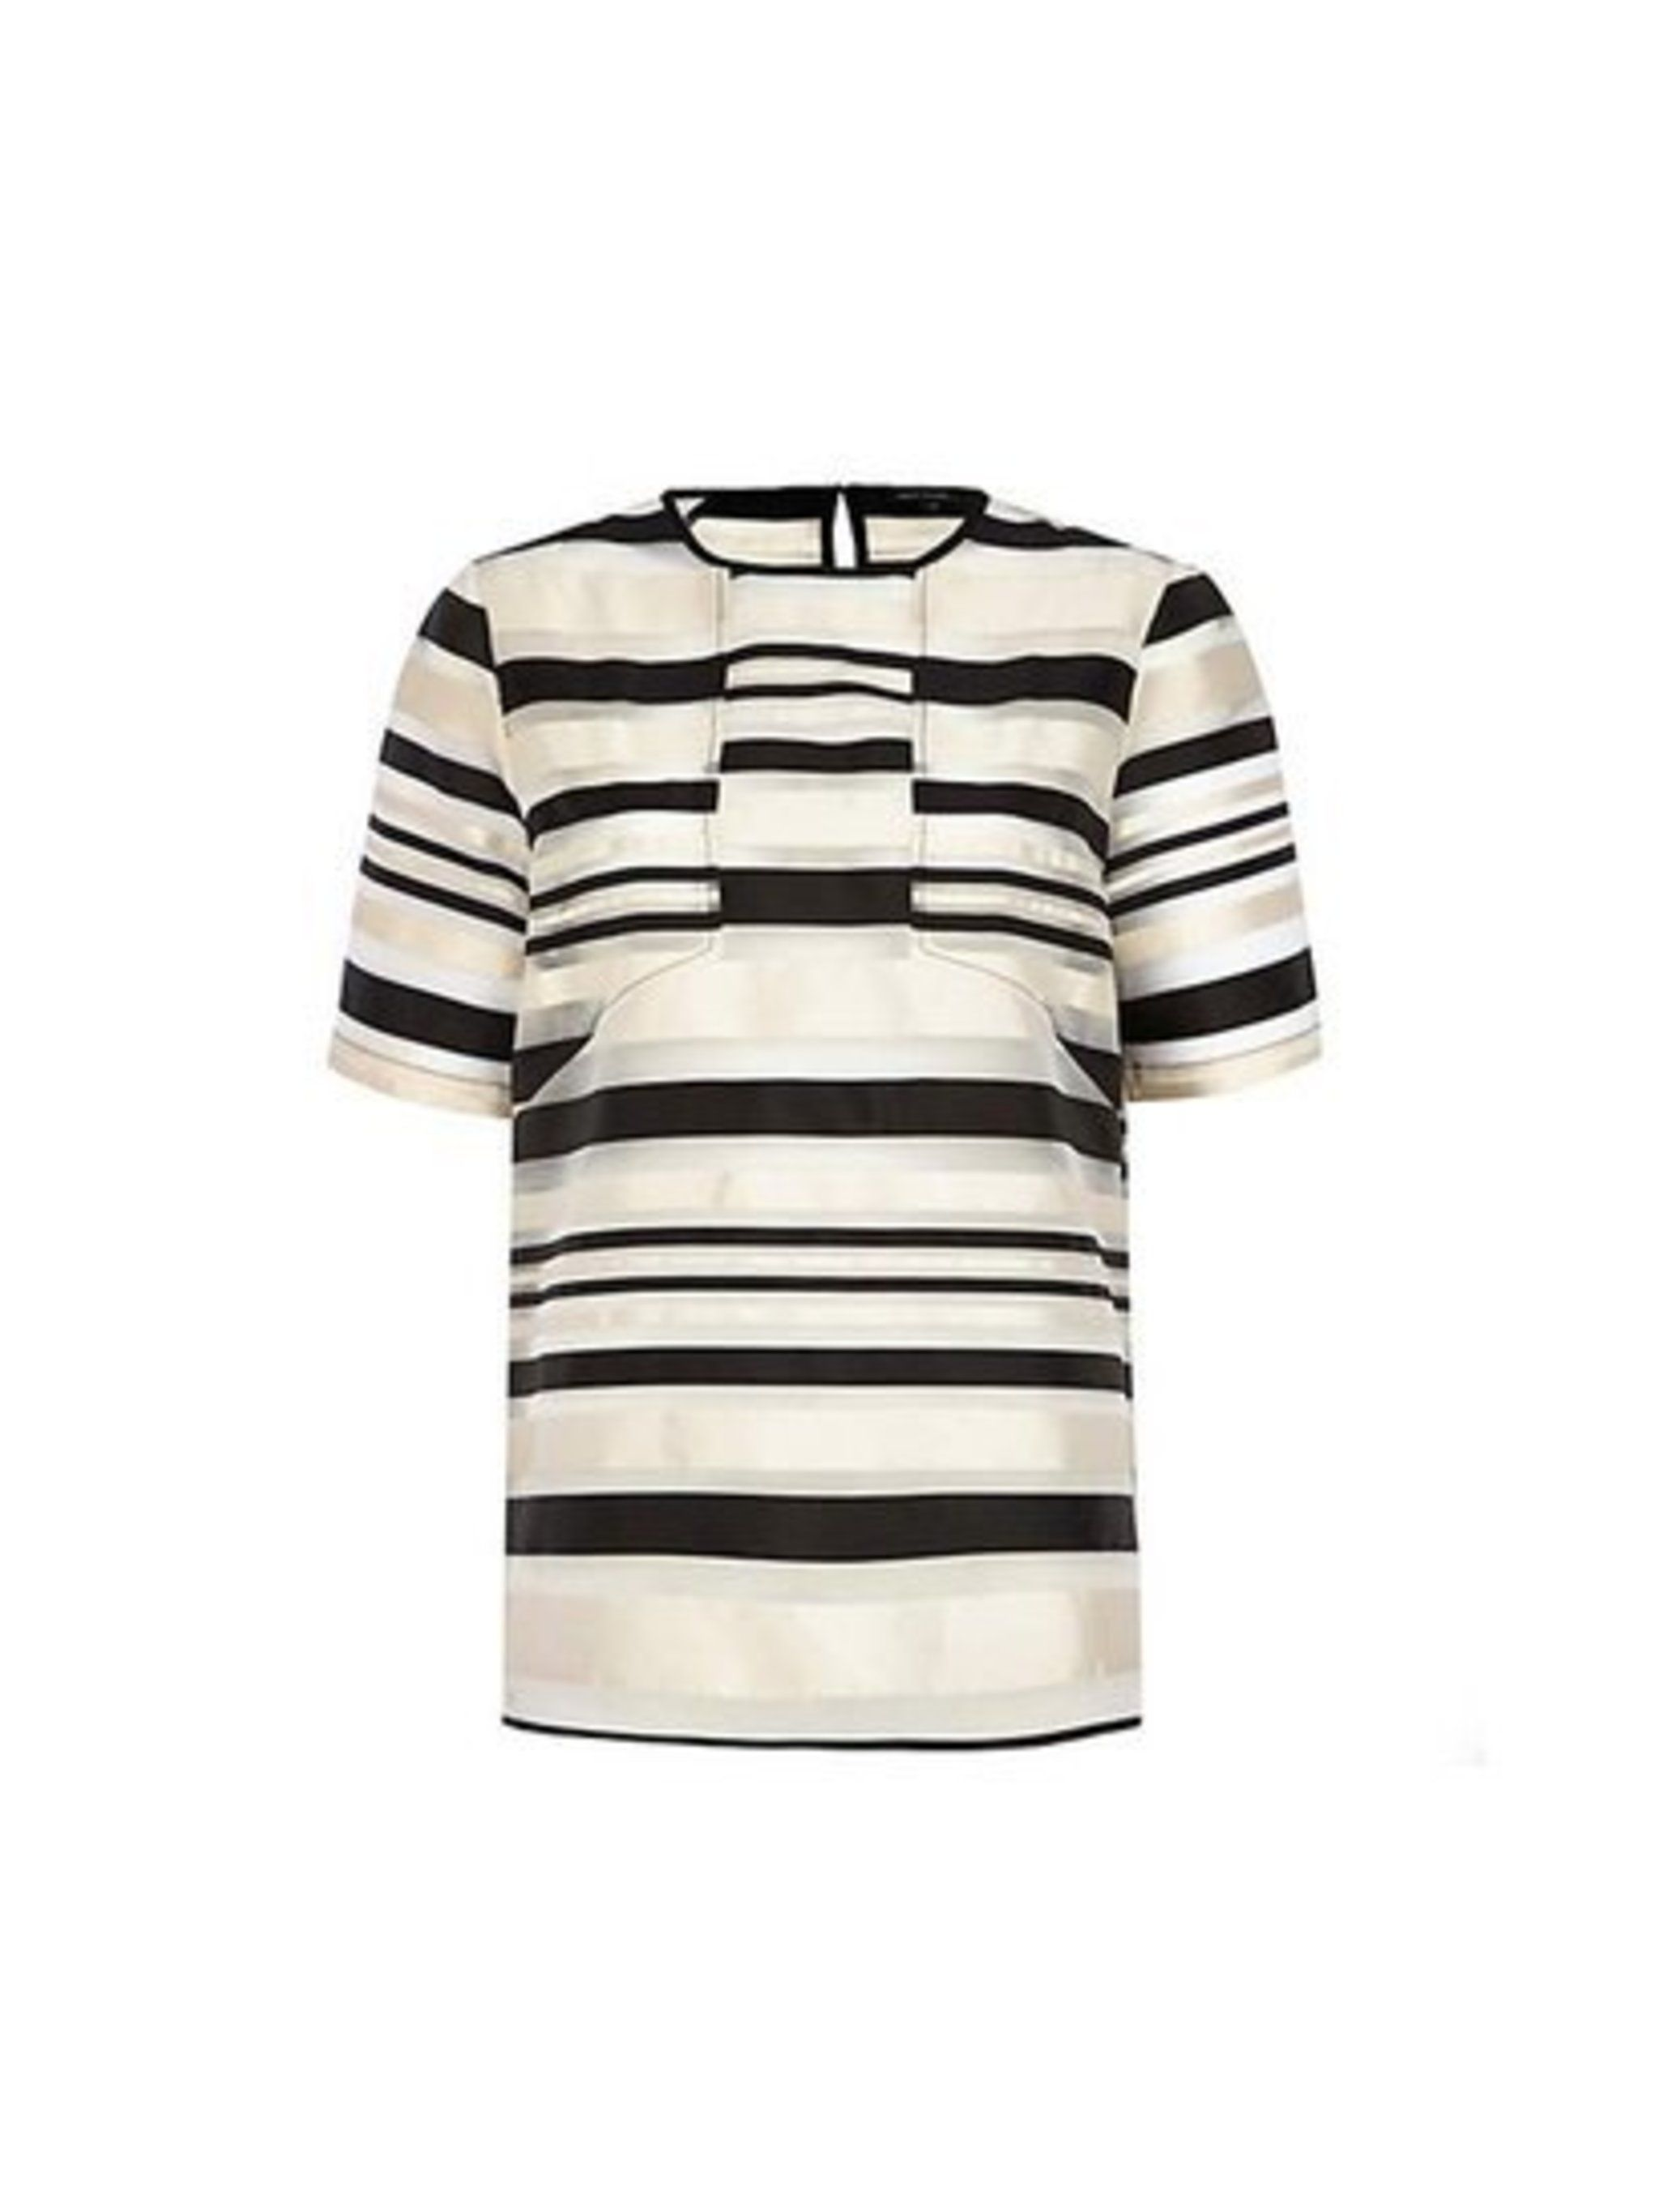 Pair with cigarette pants, like Executive Fashion Director Kirsty Dale.River Island top, £35